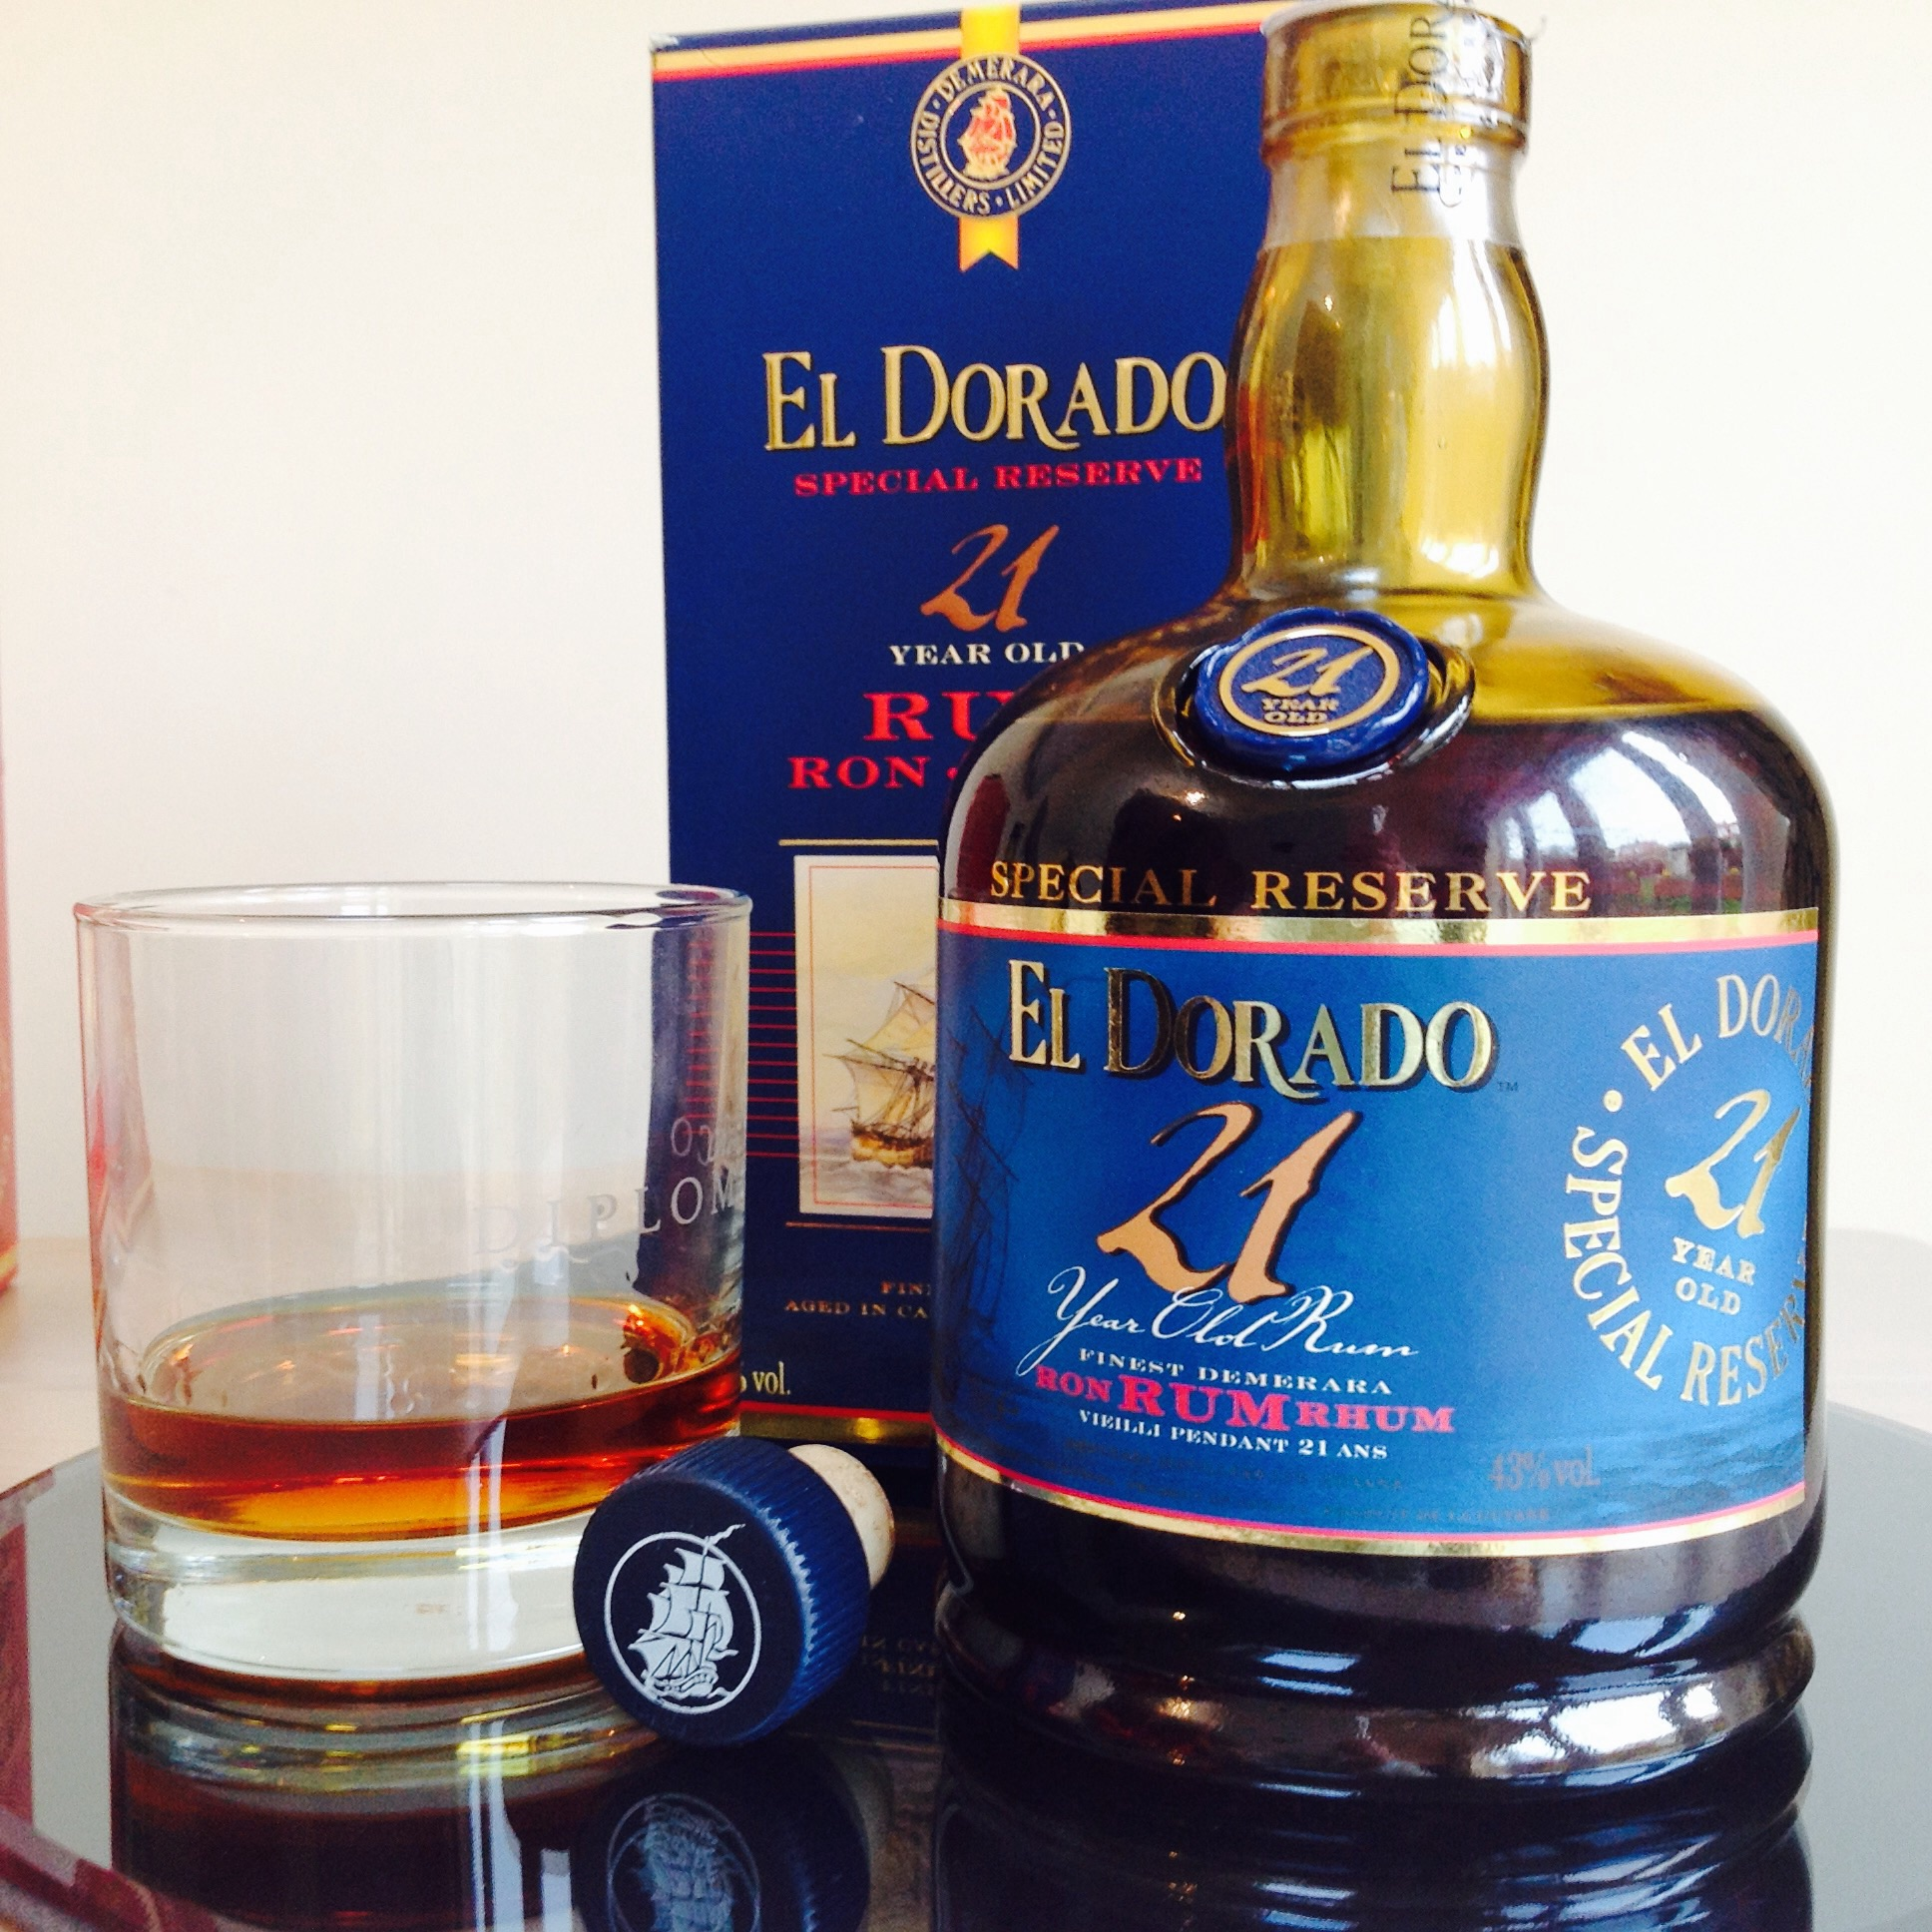 Want to have some drinks in eldorado